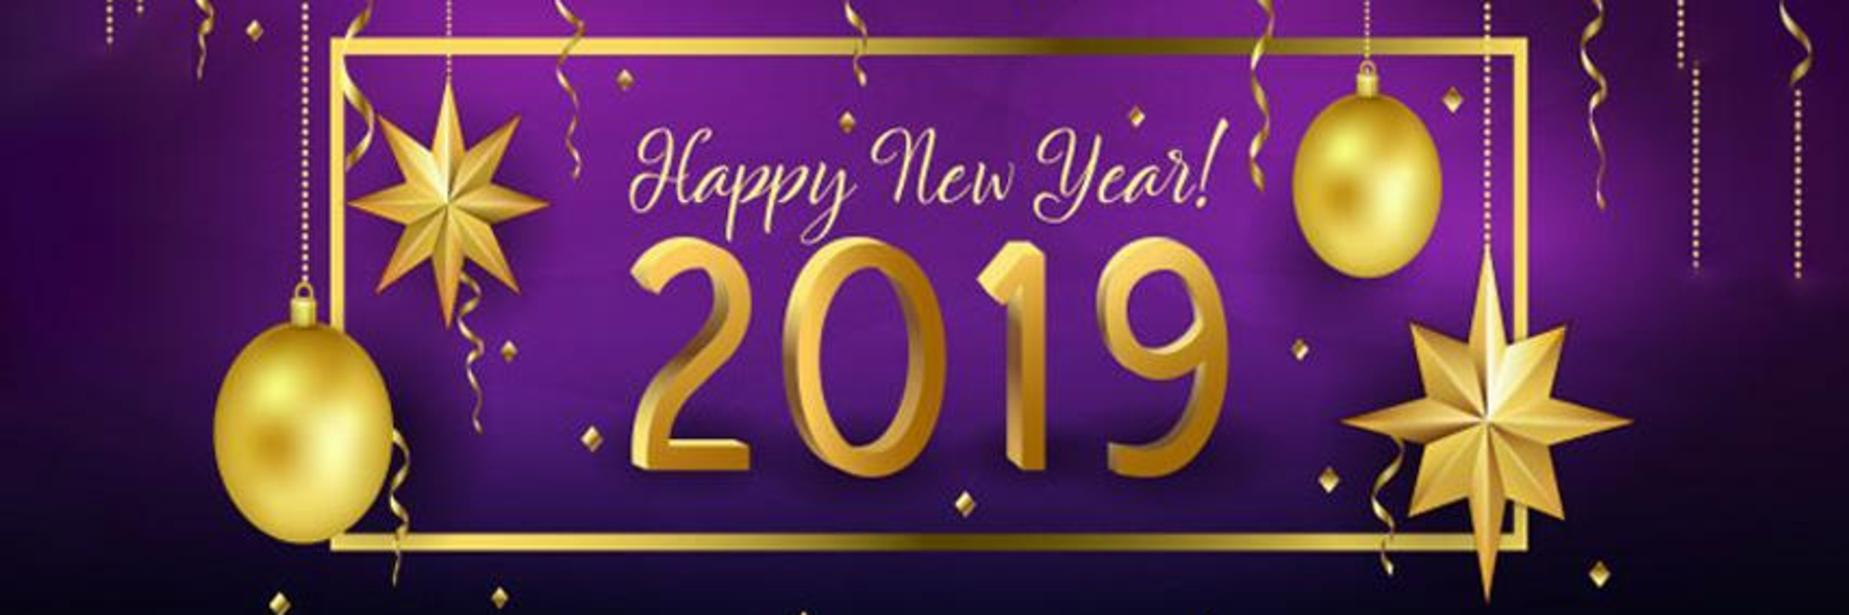 Image depicts a purple and black background with gold ornaments.  Texts reads Happy New Year 2019.